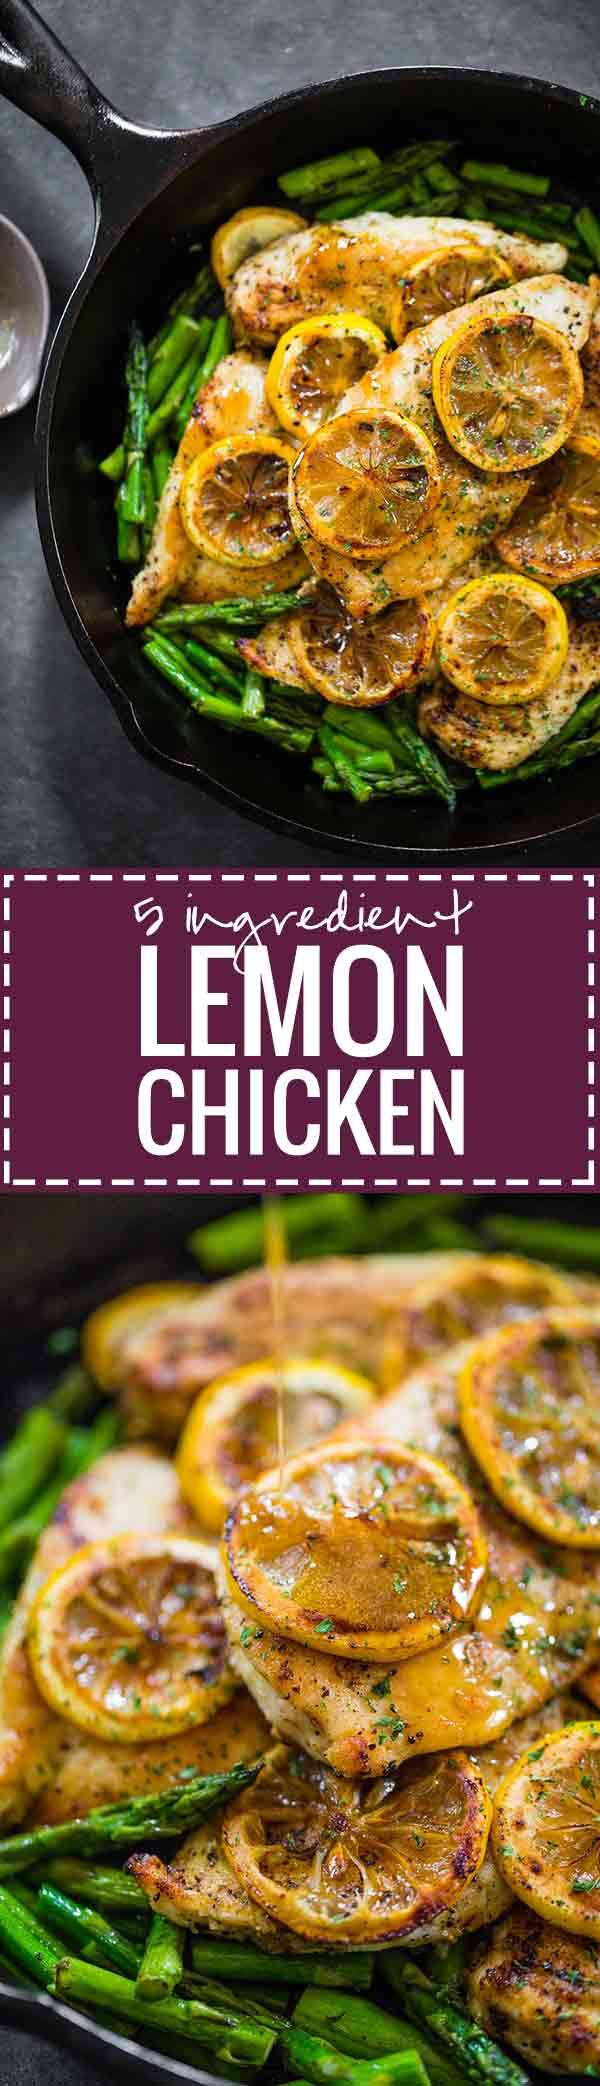 5 Ingredient Lemon Chicken with Asparagus - a bright, fresh, healthy recipe that's ready in 20 minutes! 300 calories. | pinchofyum.com